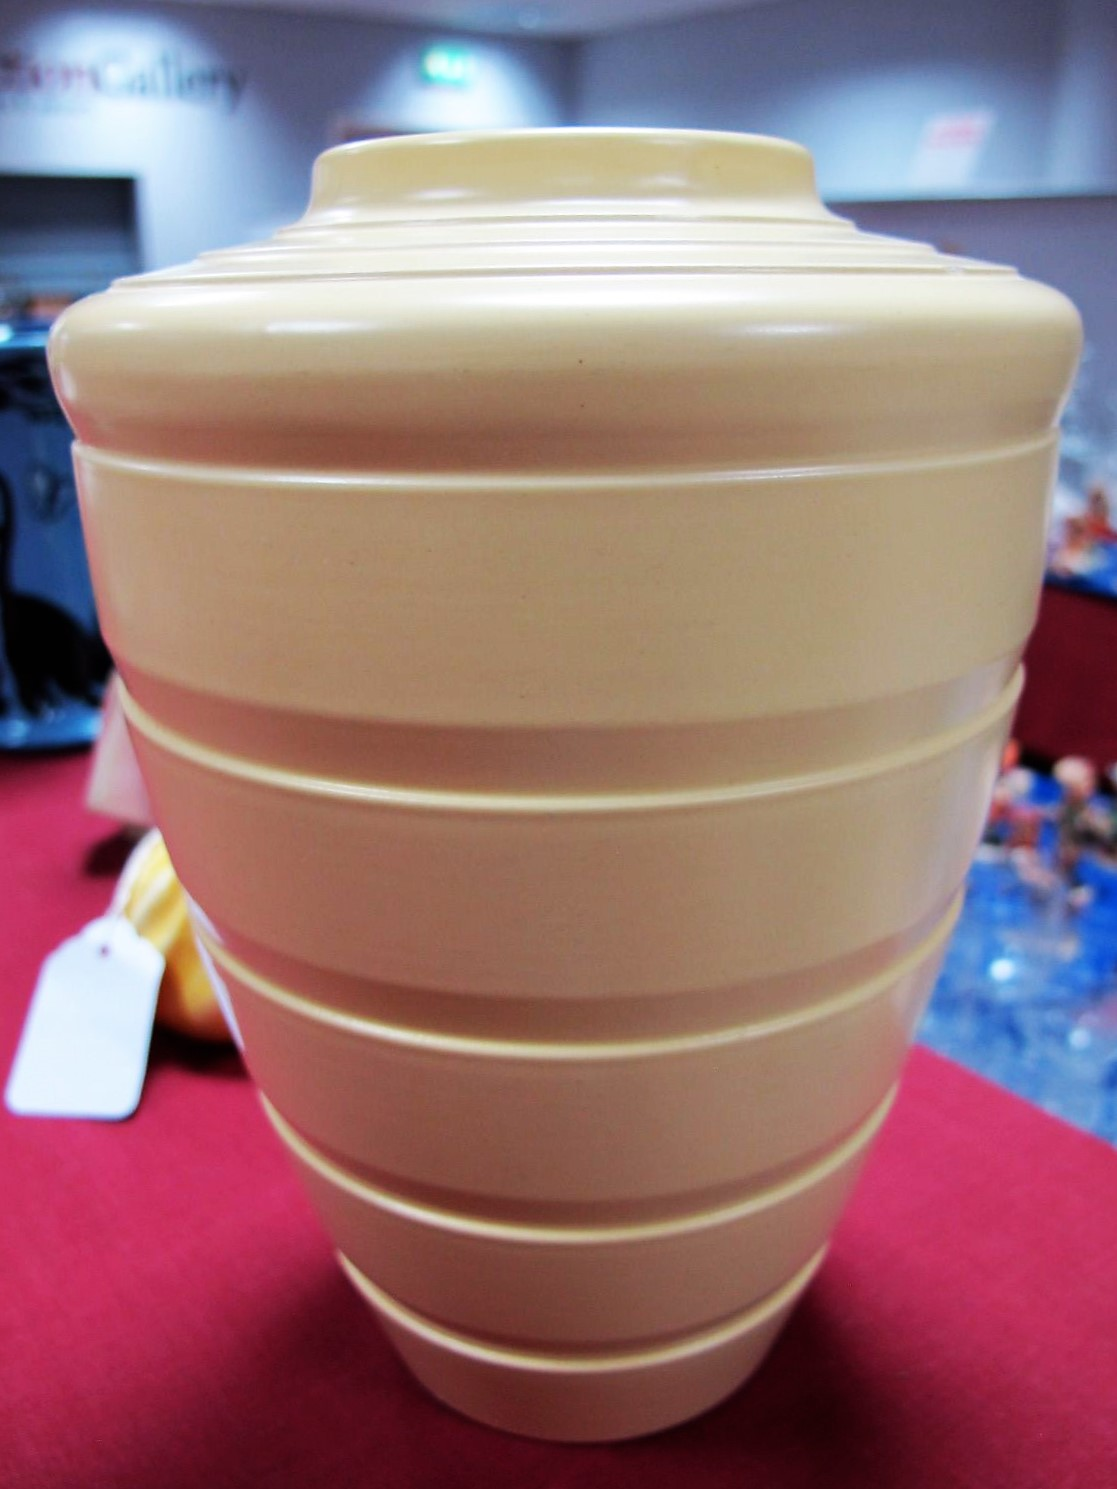 Lot 86 - A Wedgwood Vase, designed by Keith Murray, of shouldered ovoid form with incised horizontal bands,